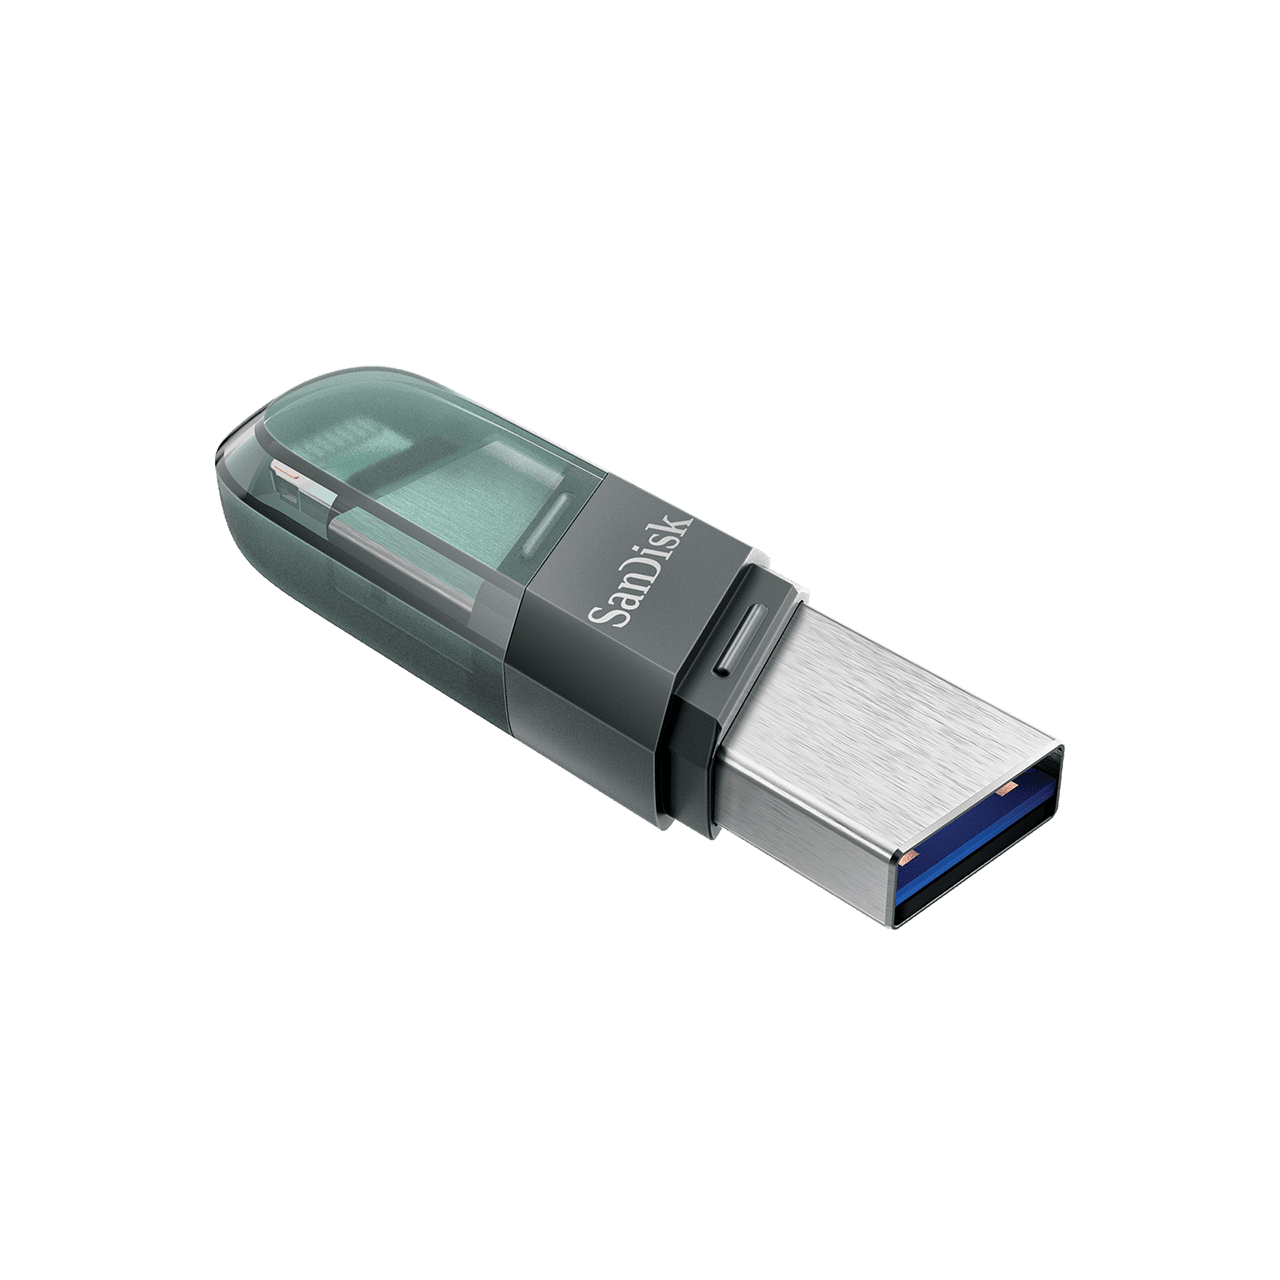 Sandisk OTG Flash Drive iXpand Flip with USB 3.1 and Lightning Connection, Compact Size, iXpand Drive Support, Plug and Play